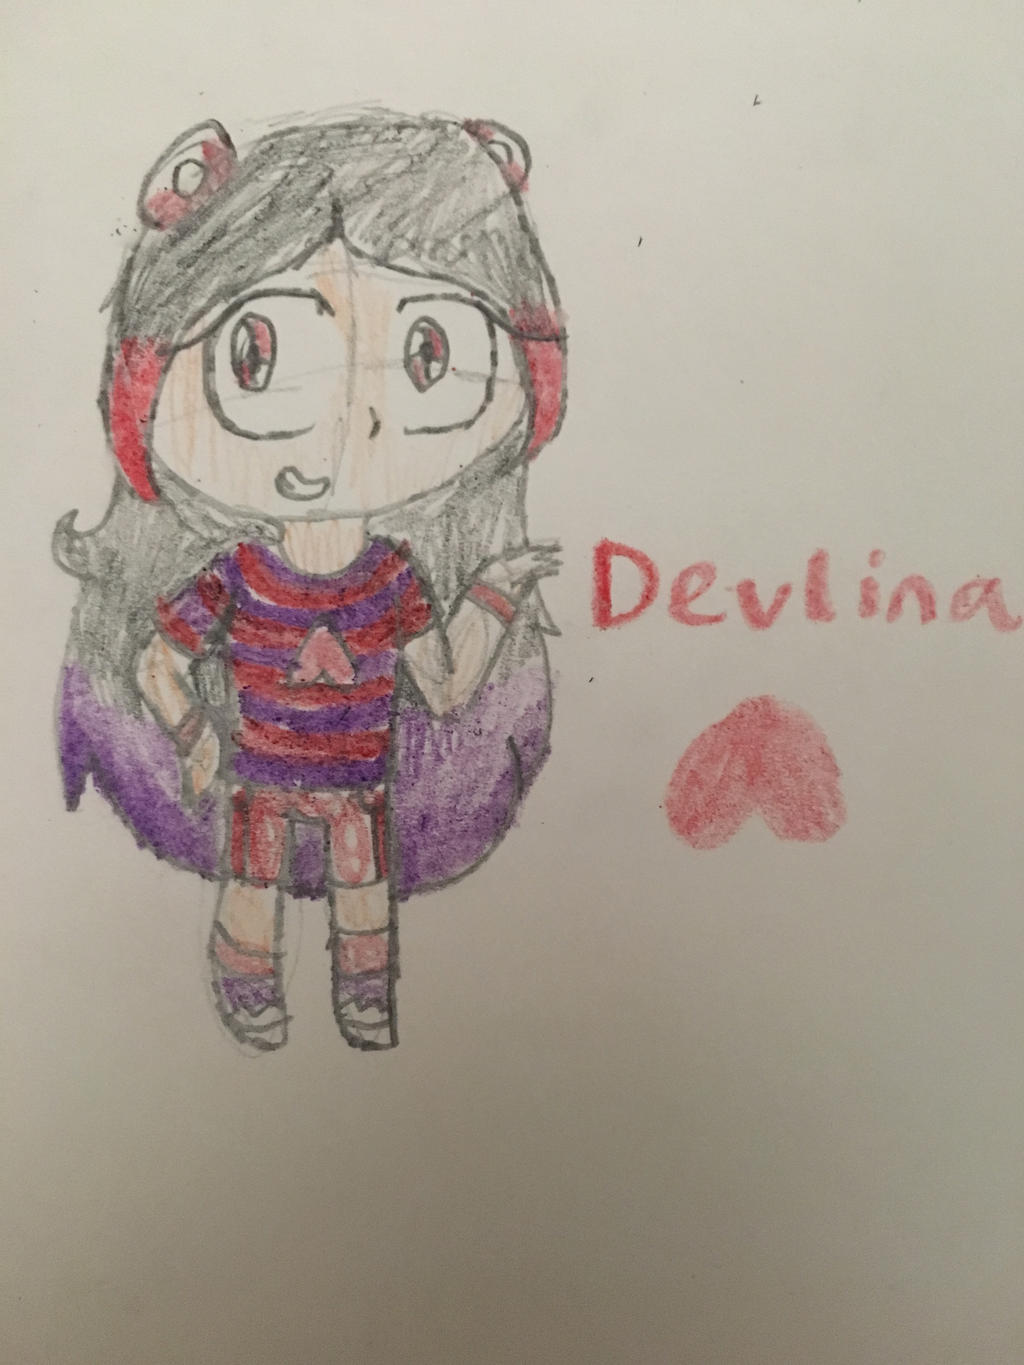 Old oc redesign [Devlina] by OctoWeeb